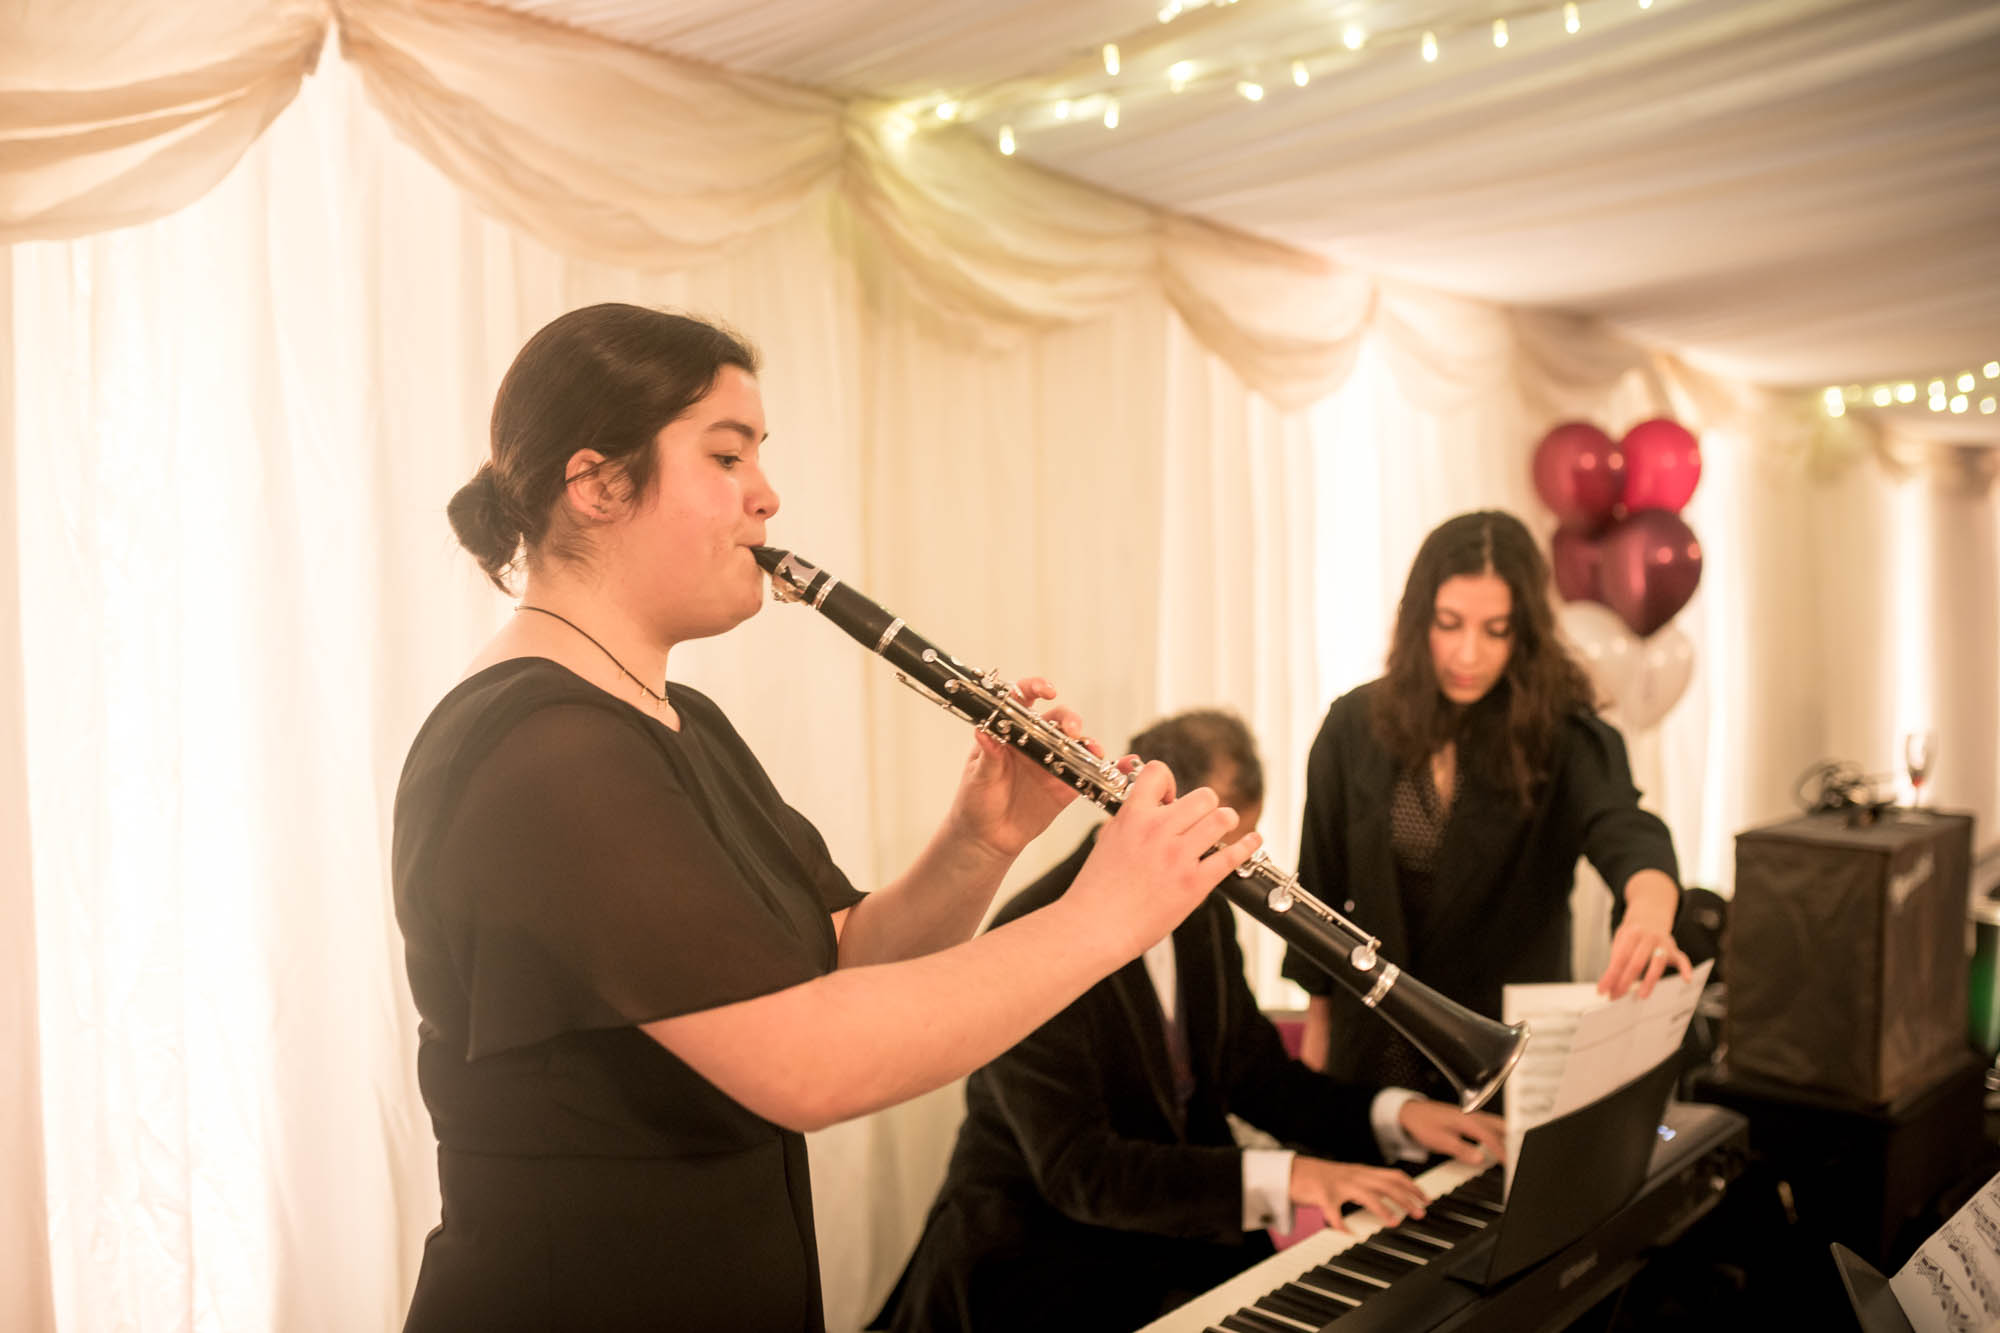 Musicians performing at the party